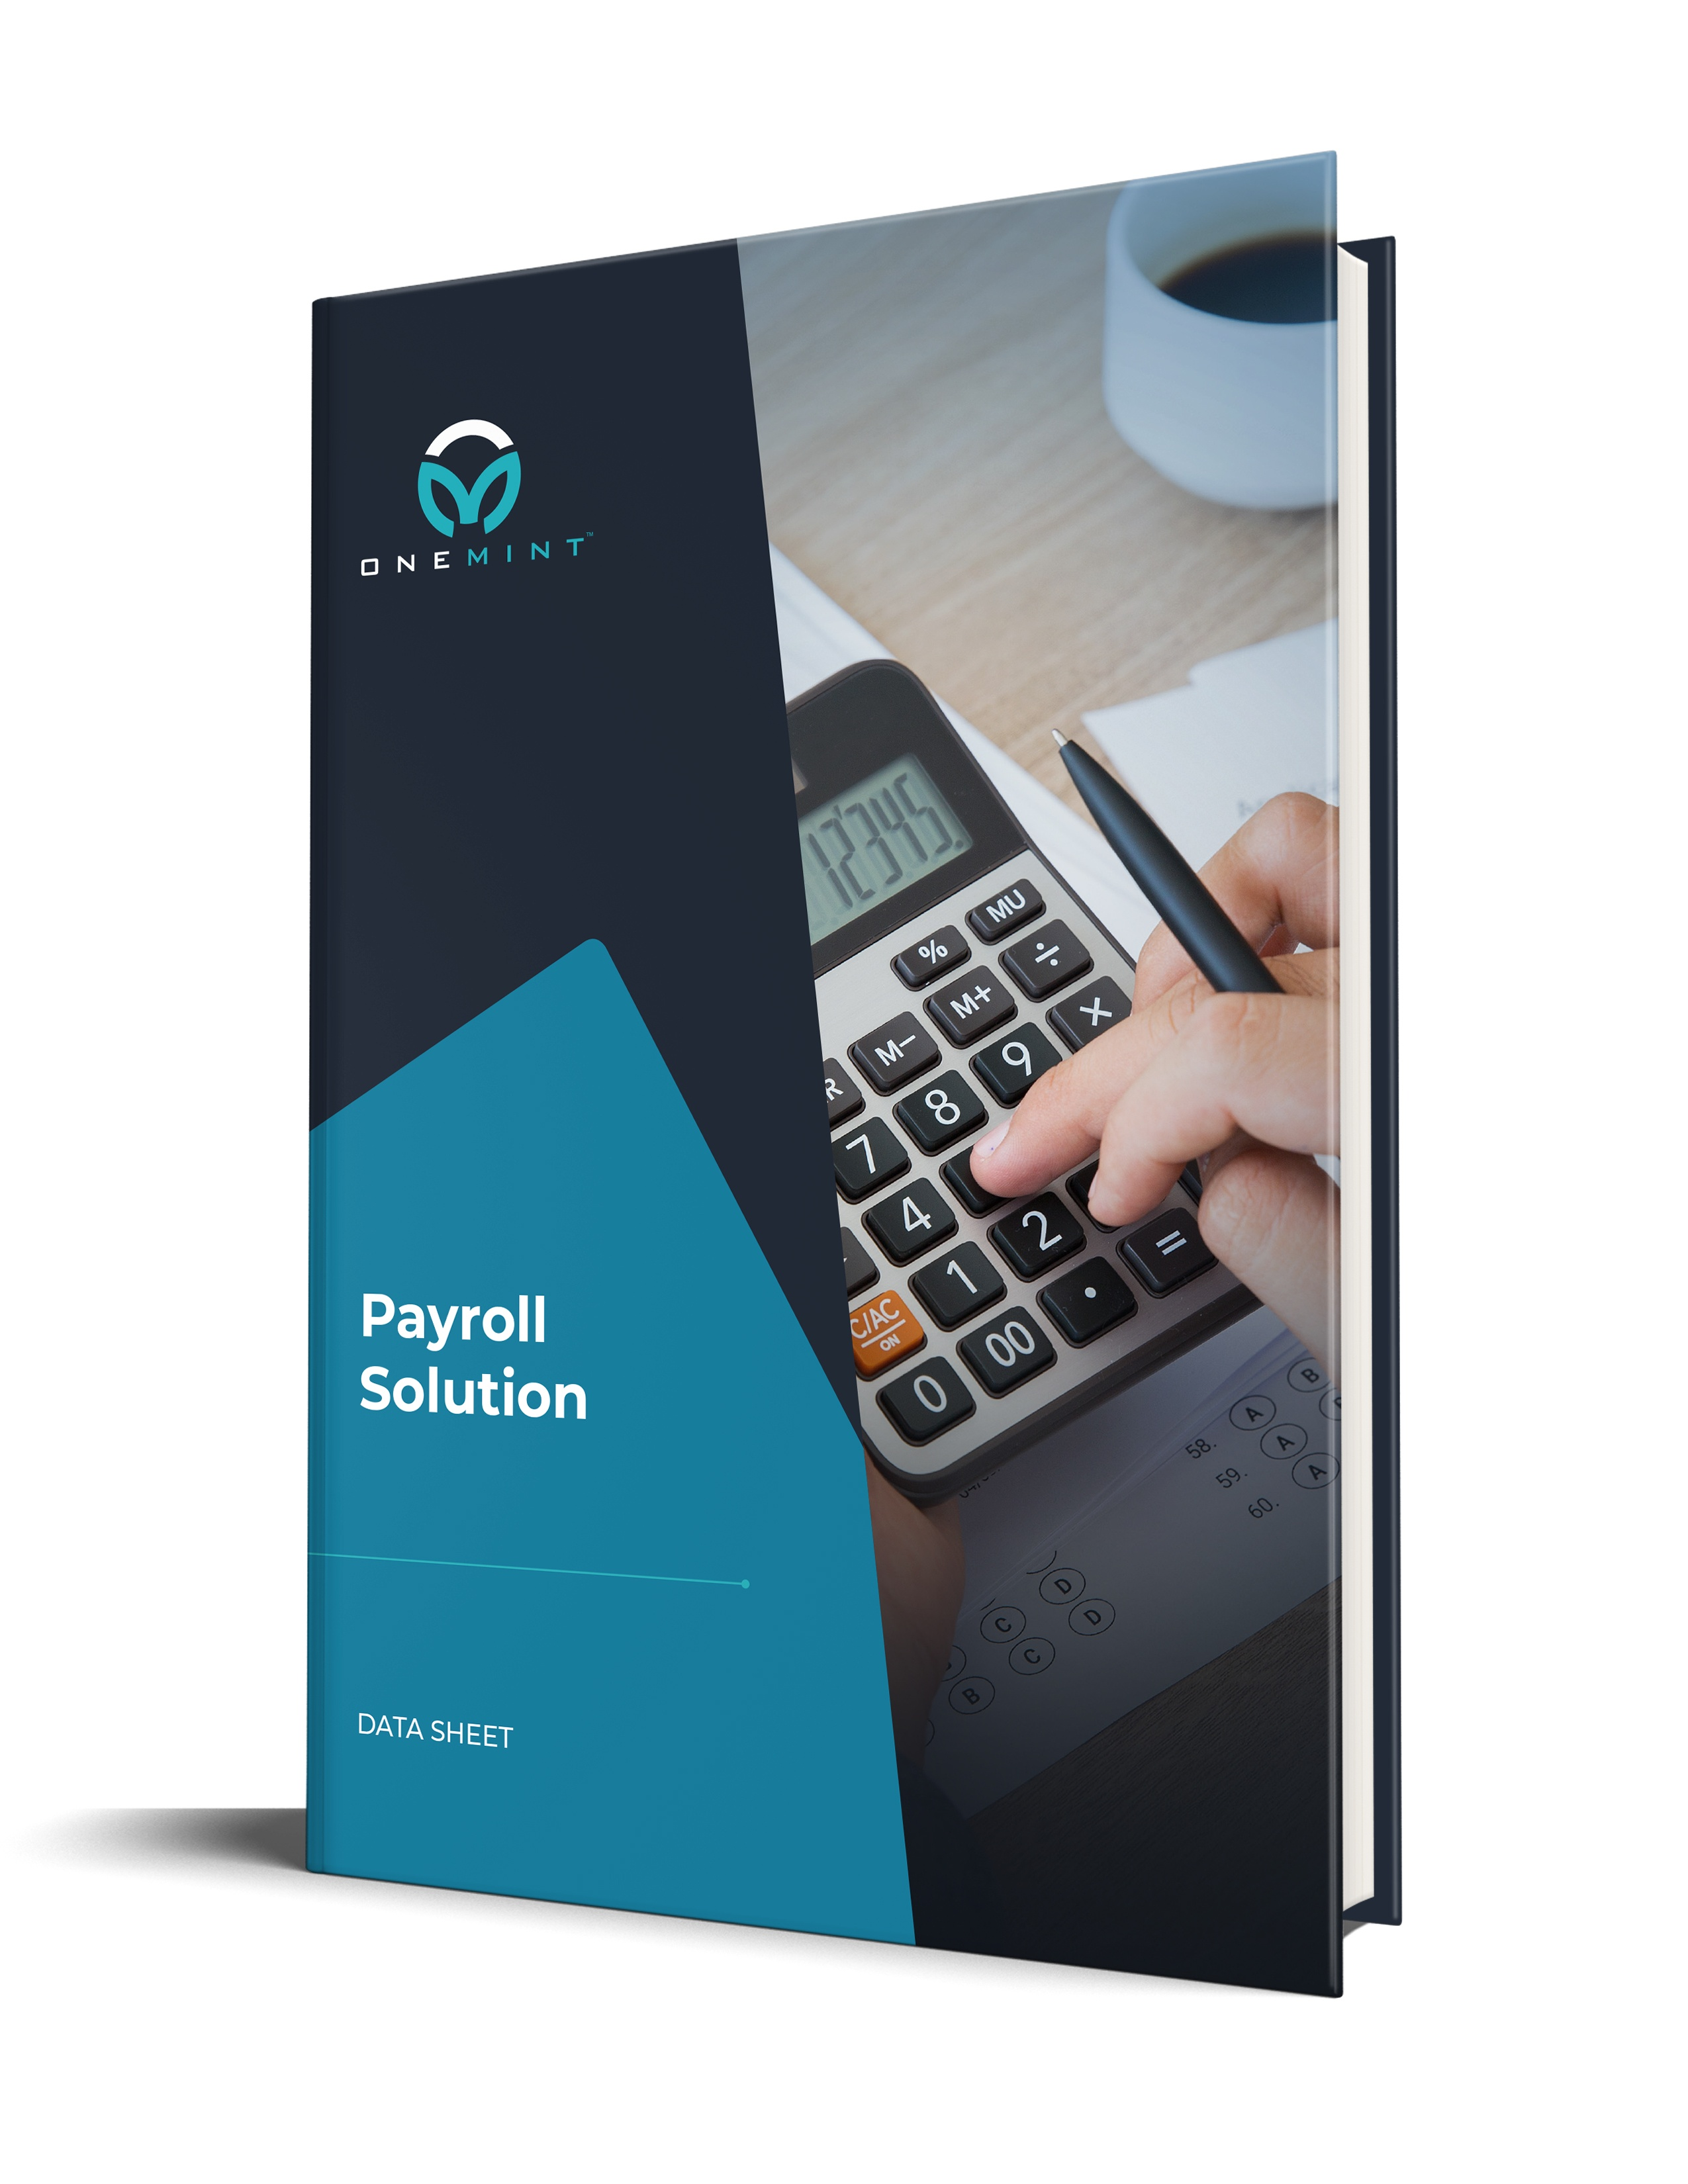 ONEMINT Your Payroll Solution